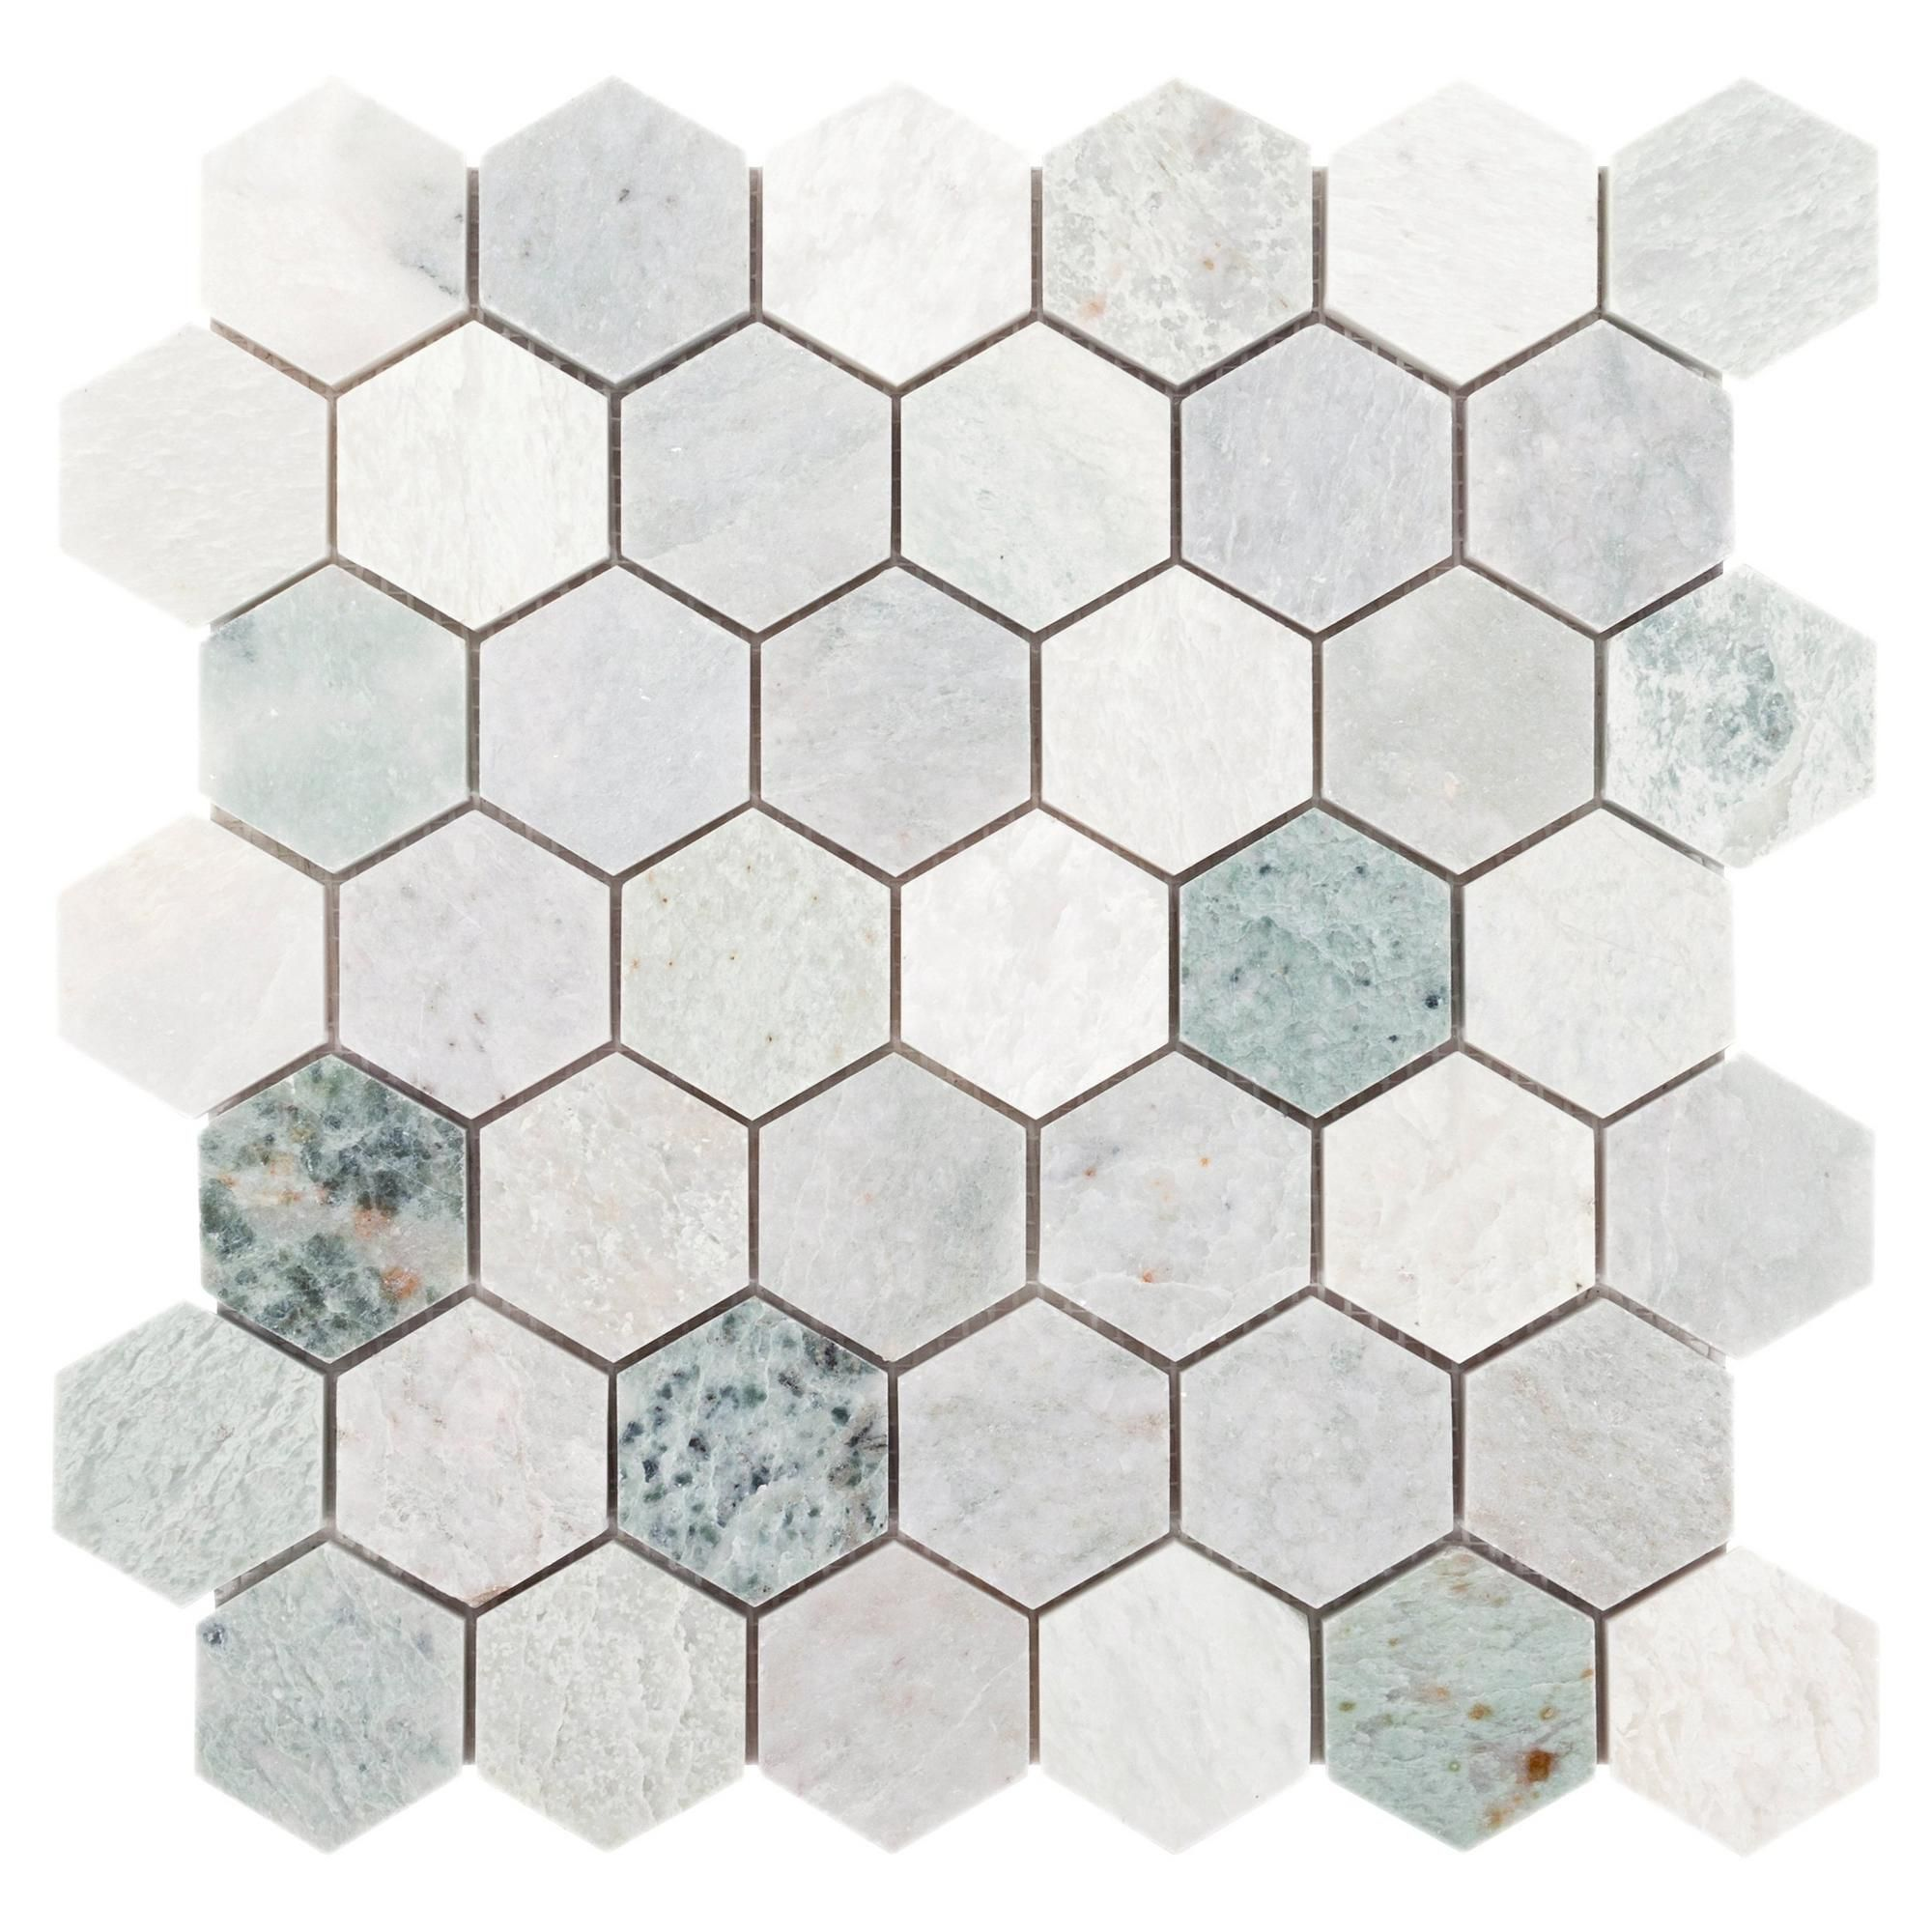 Caribbean Green Hexagon Marble Mosaic Floor Decor Marble Mosaic Floor Marble Mosaic Polished Marble Tiles